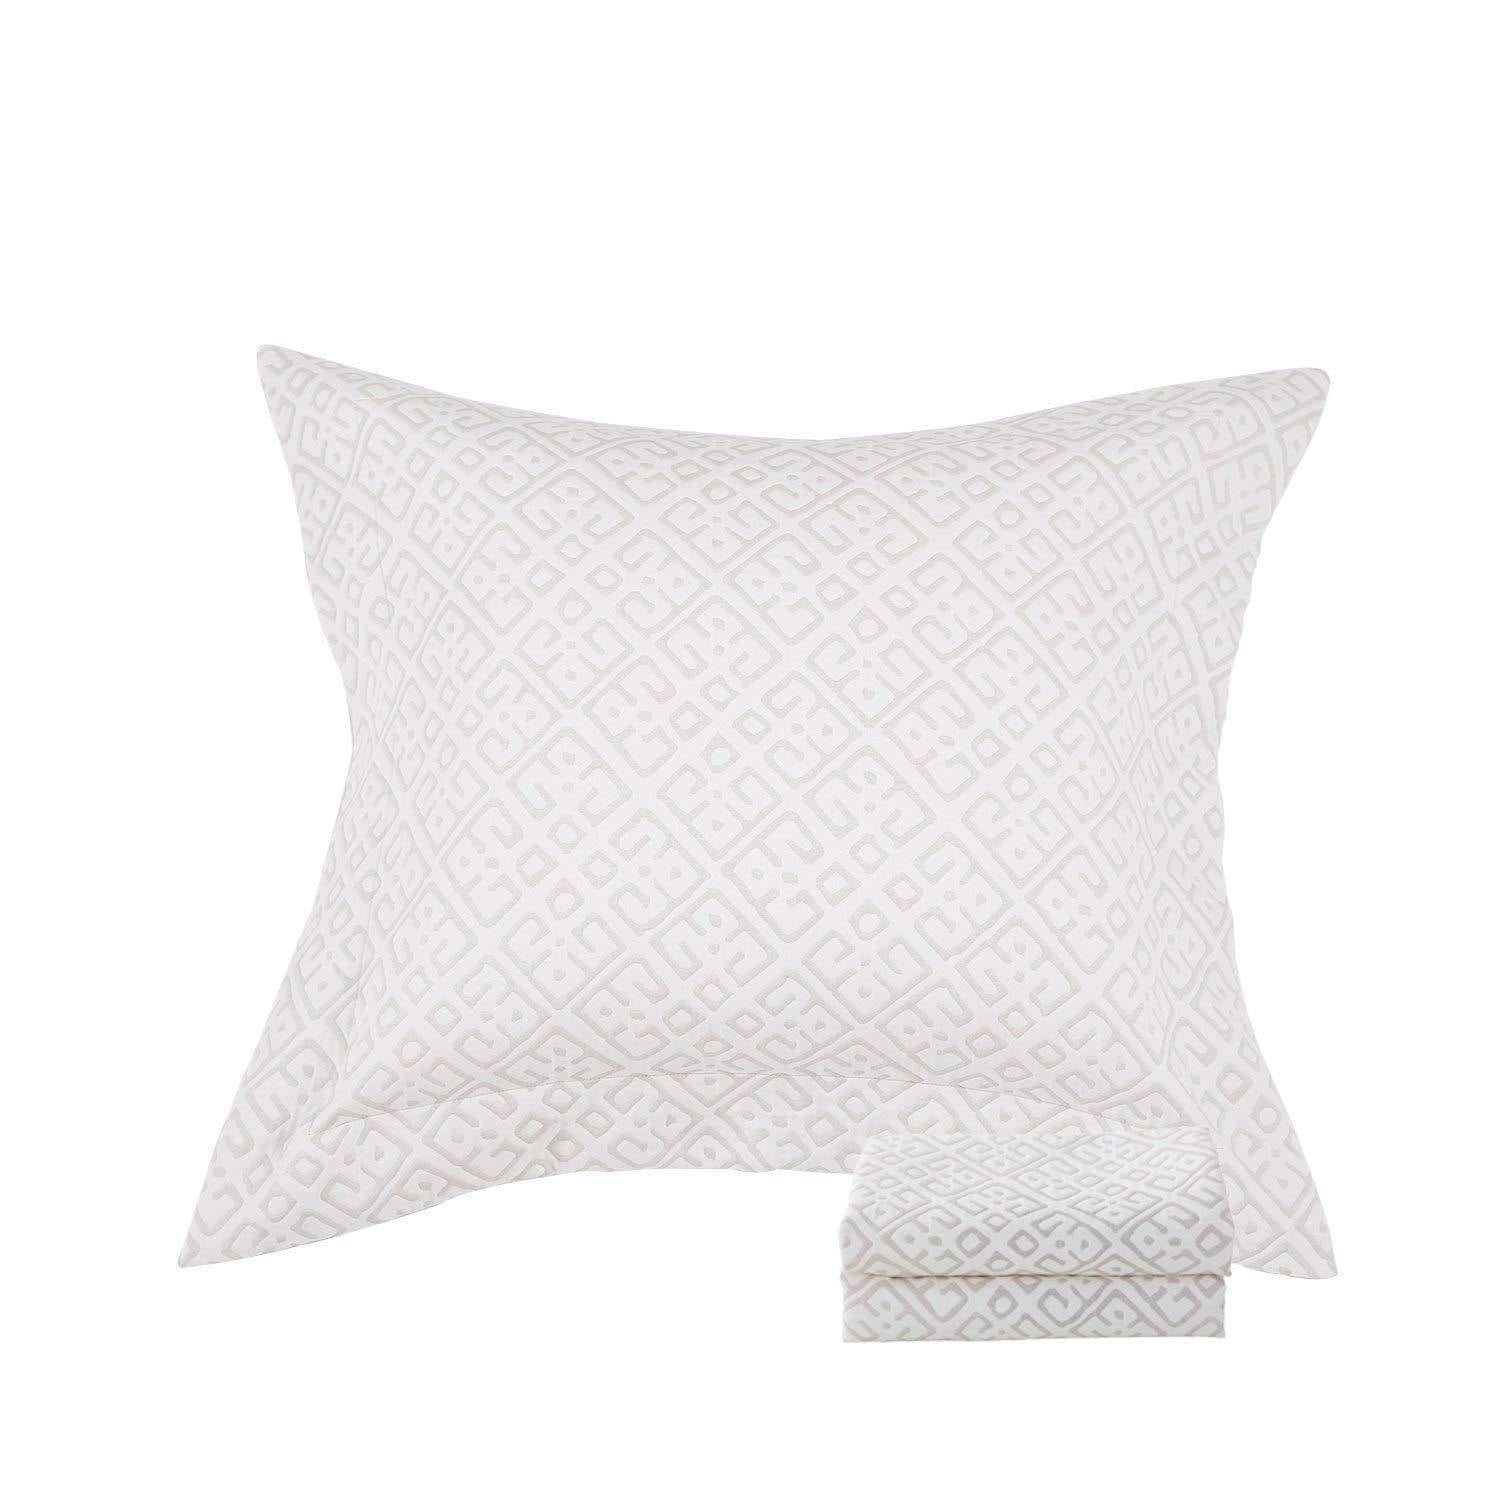 NTBAY 3 Layers Washed Cotton Woven Jacquard Pillow Shams Set of 2 - NTBAY